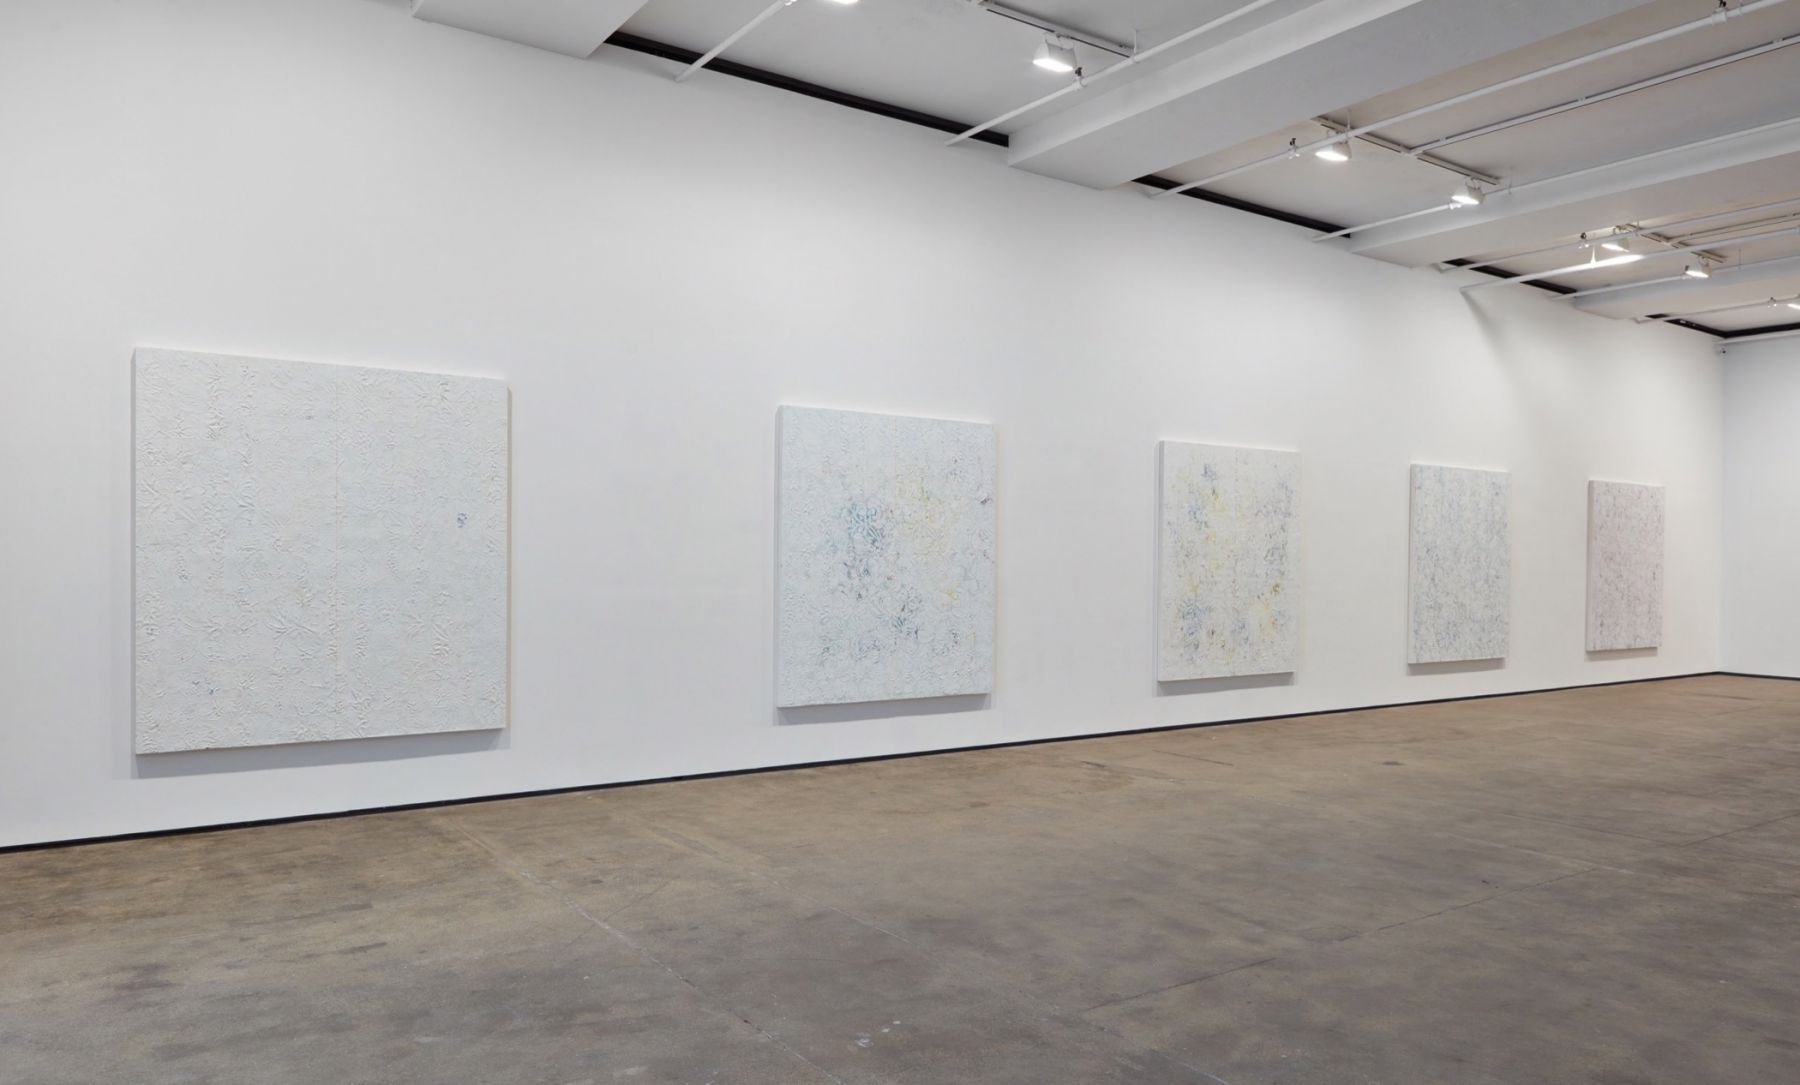 Installation view of Hugo McCloud: Veiled at Sean Kelly, New York